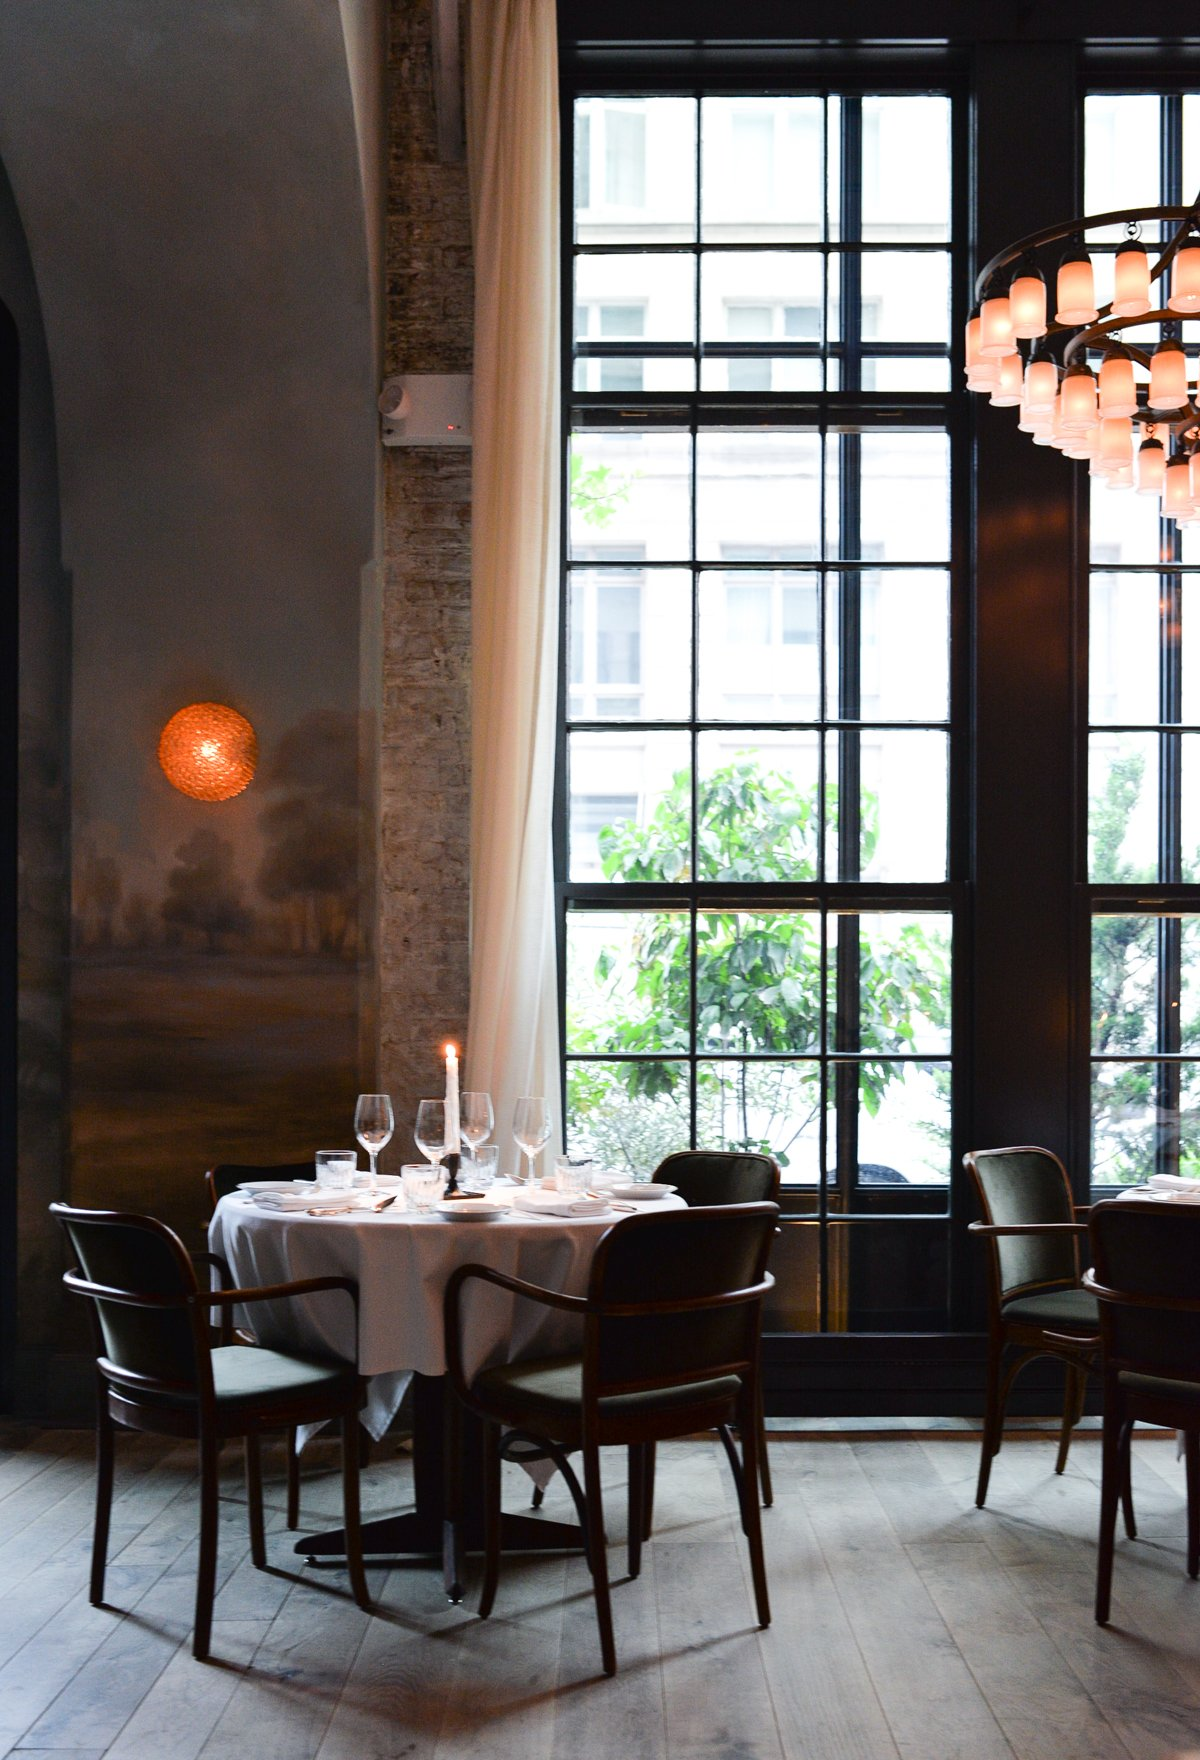 Private dining at Le Coucou NYC